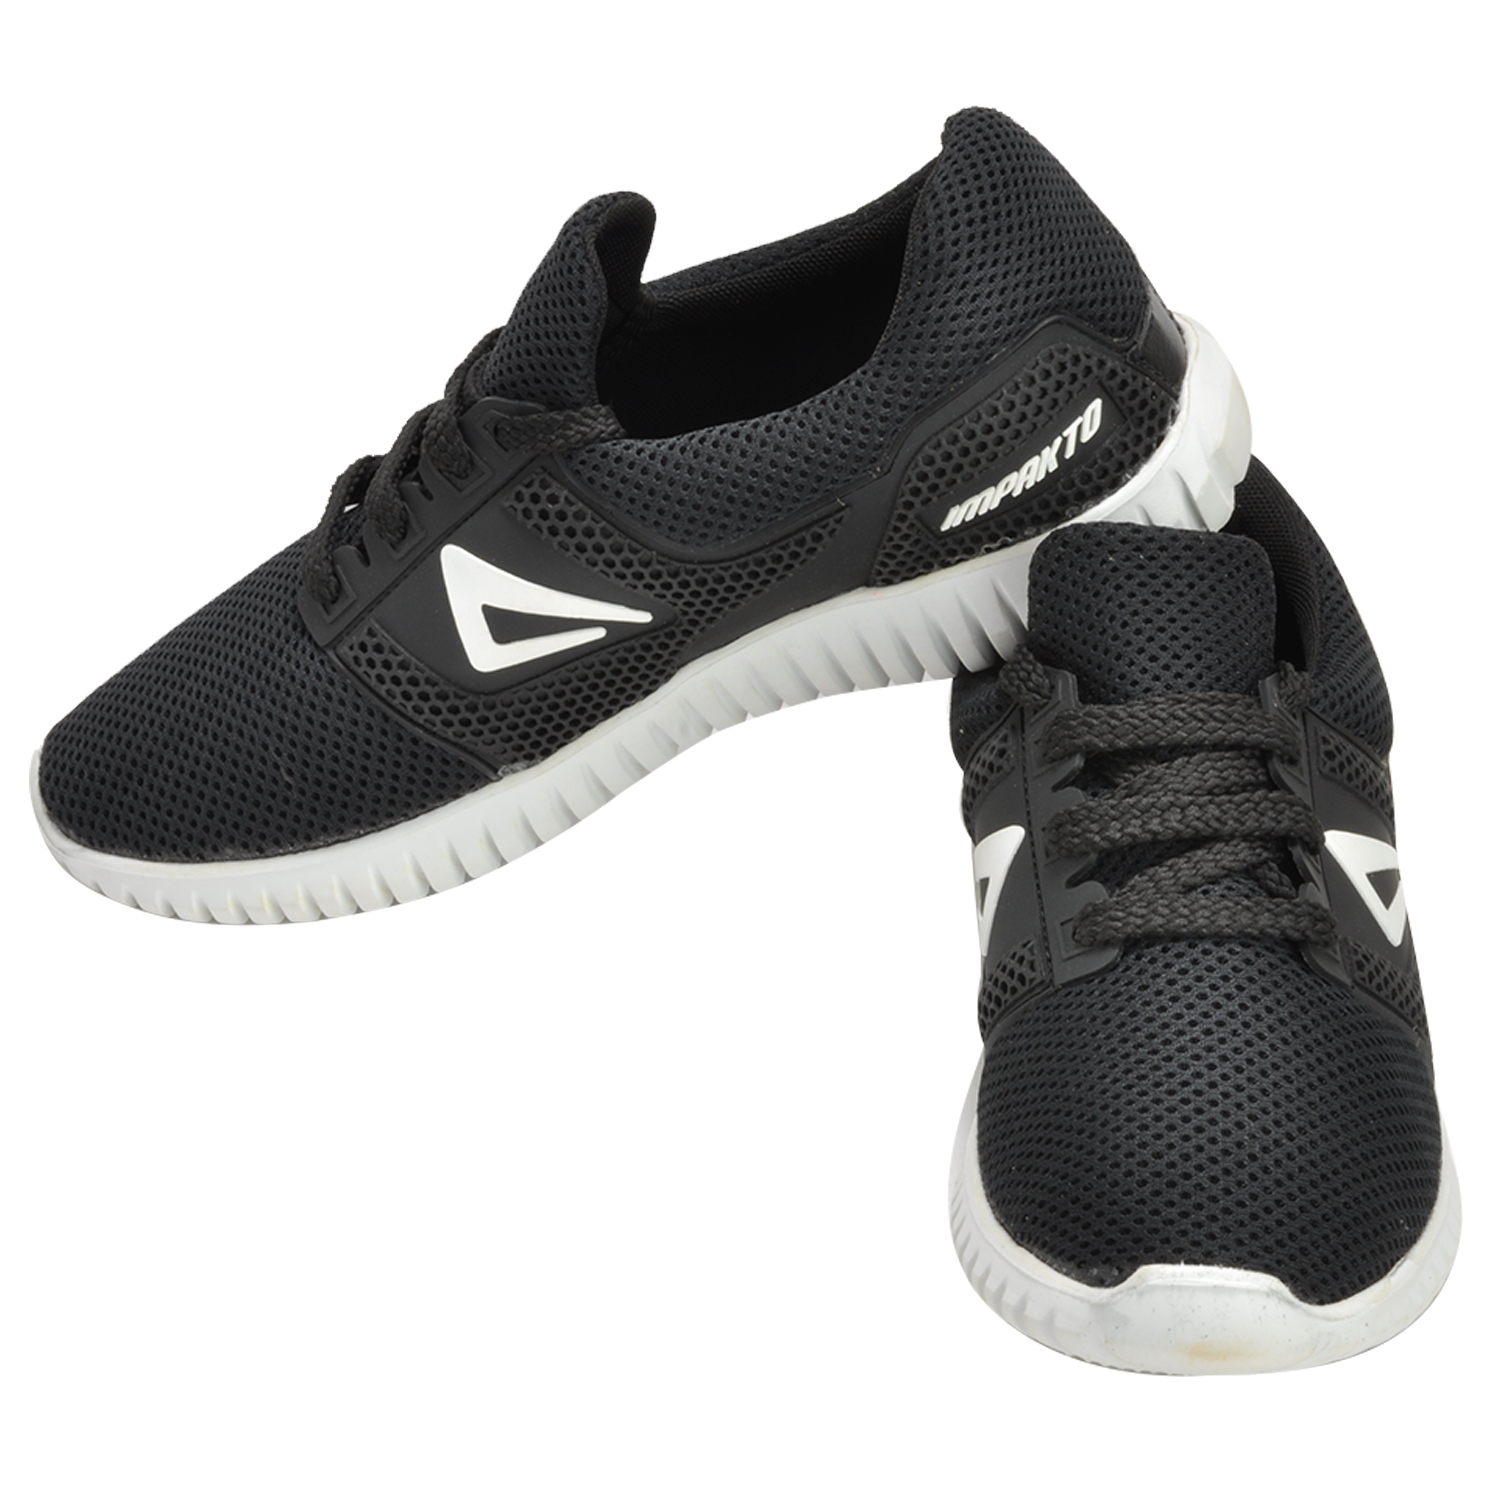 Black Casual Shoes Mens India